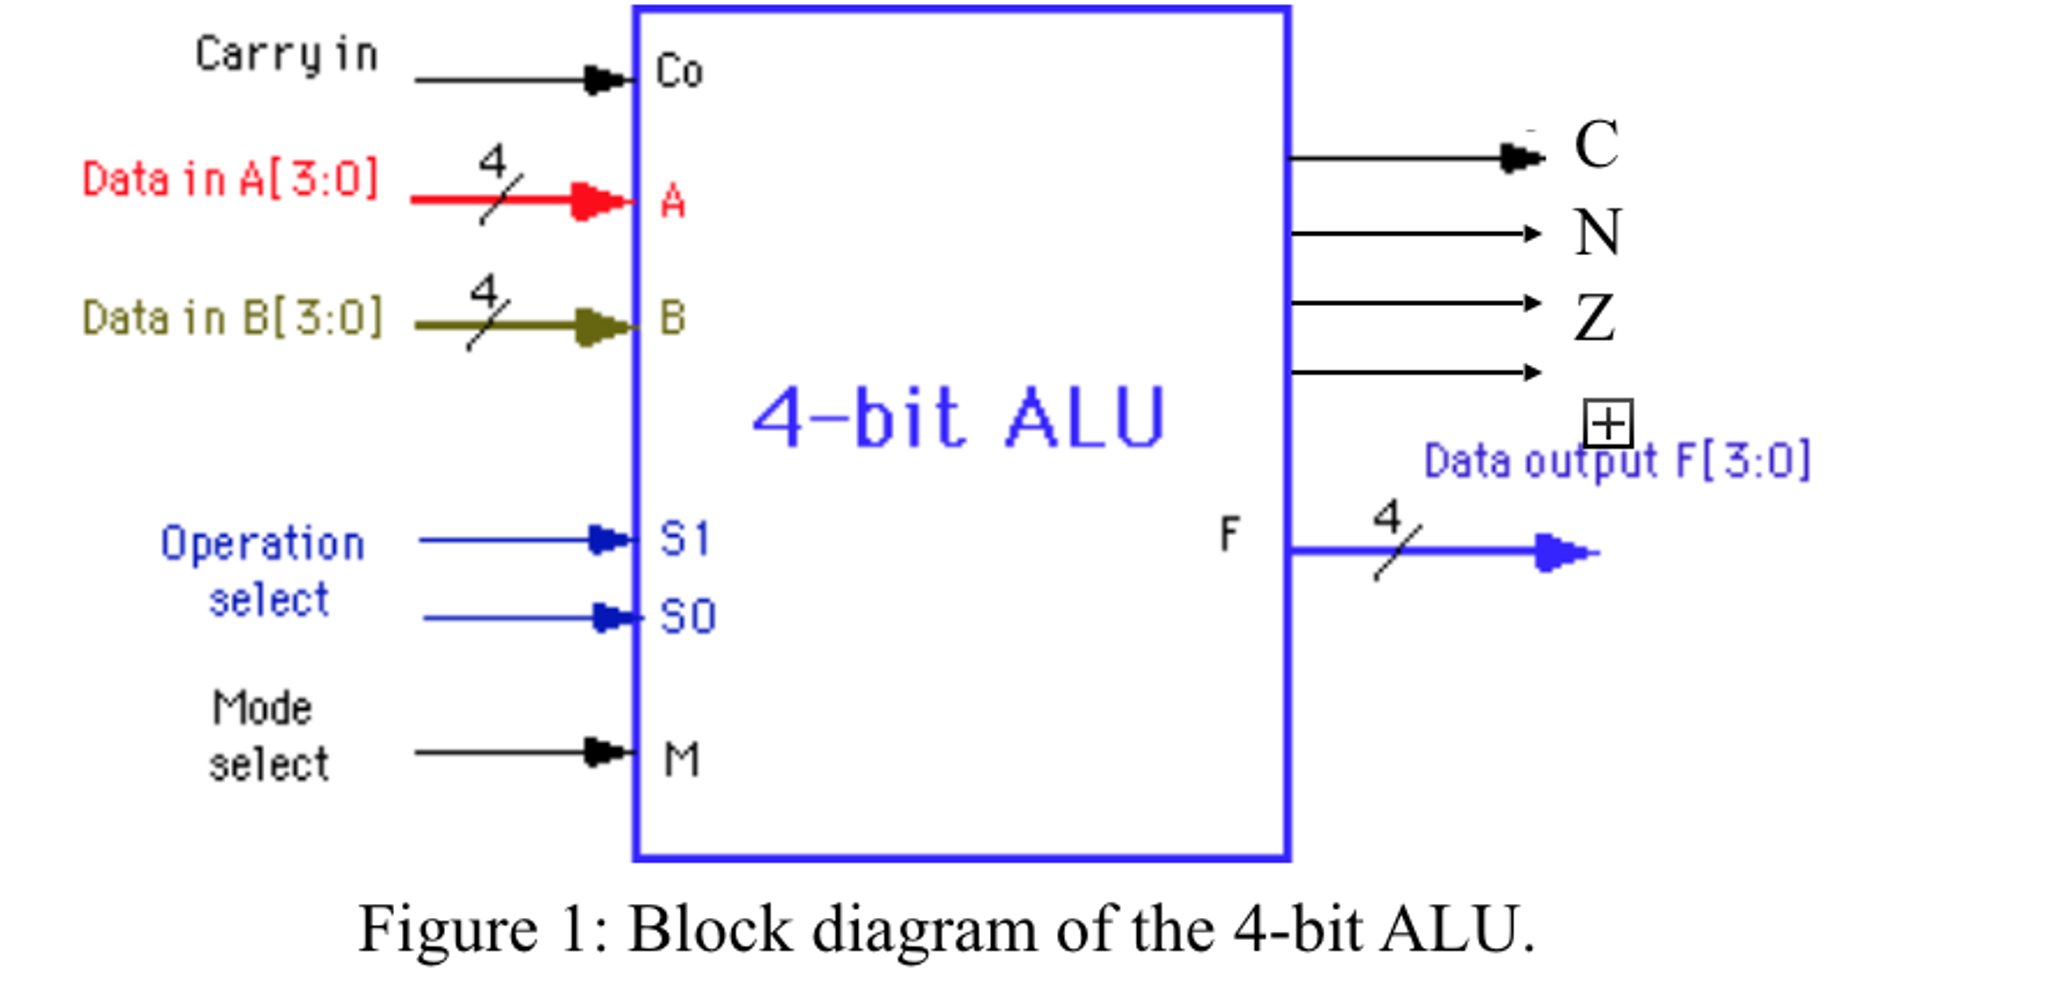 solved design a 4 bit alu with 3 function select inputs on Binary Number System 1 bit alu circuit diagram for a possible block diagram of the alu is shown in figure 2 it consists of three modules 2 1 mux, a logic unit and an arithmetic unit